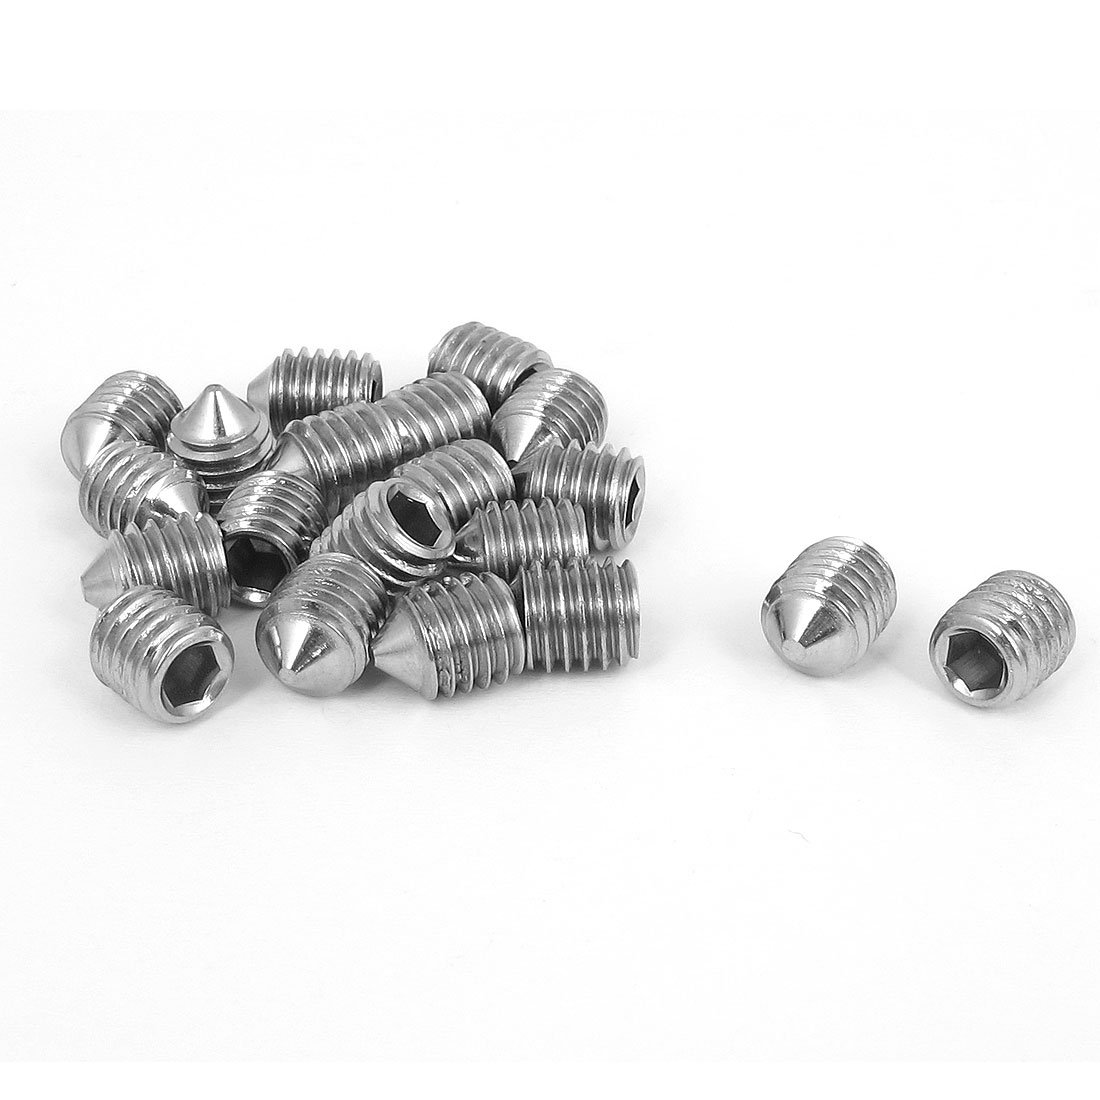 uxcell M8x10mm Stainless Steel Cone Point Hexagon Socket Grub Screws 20pcs a15091700ux0143